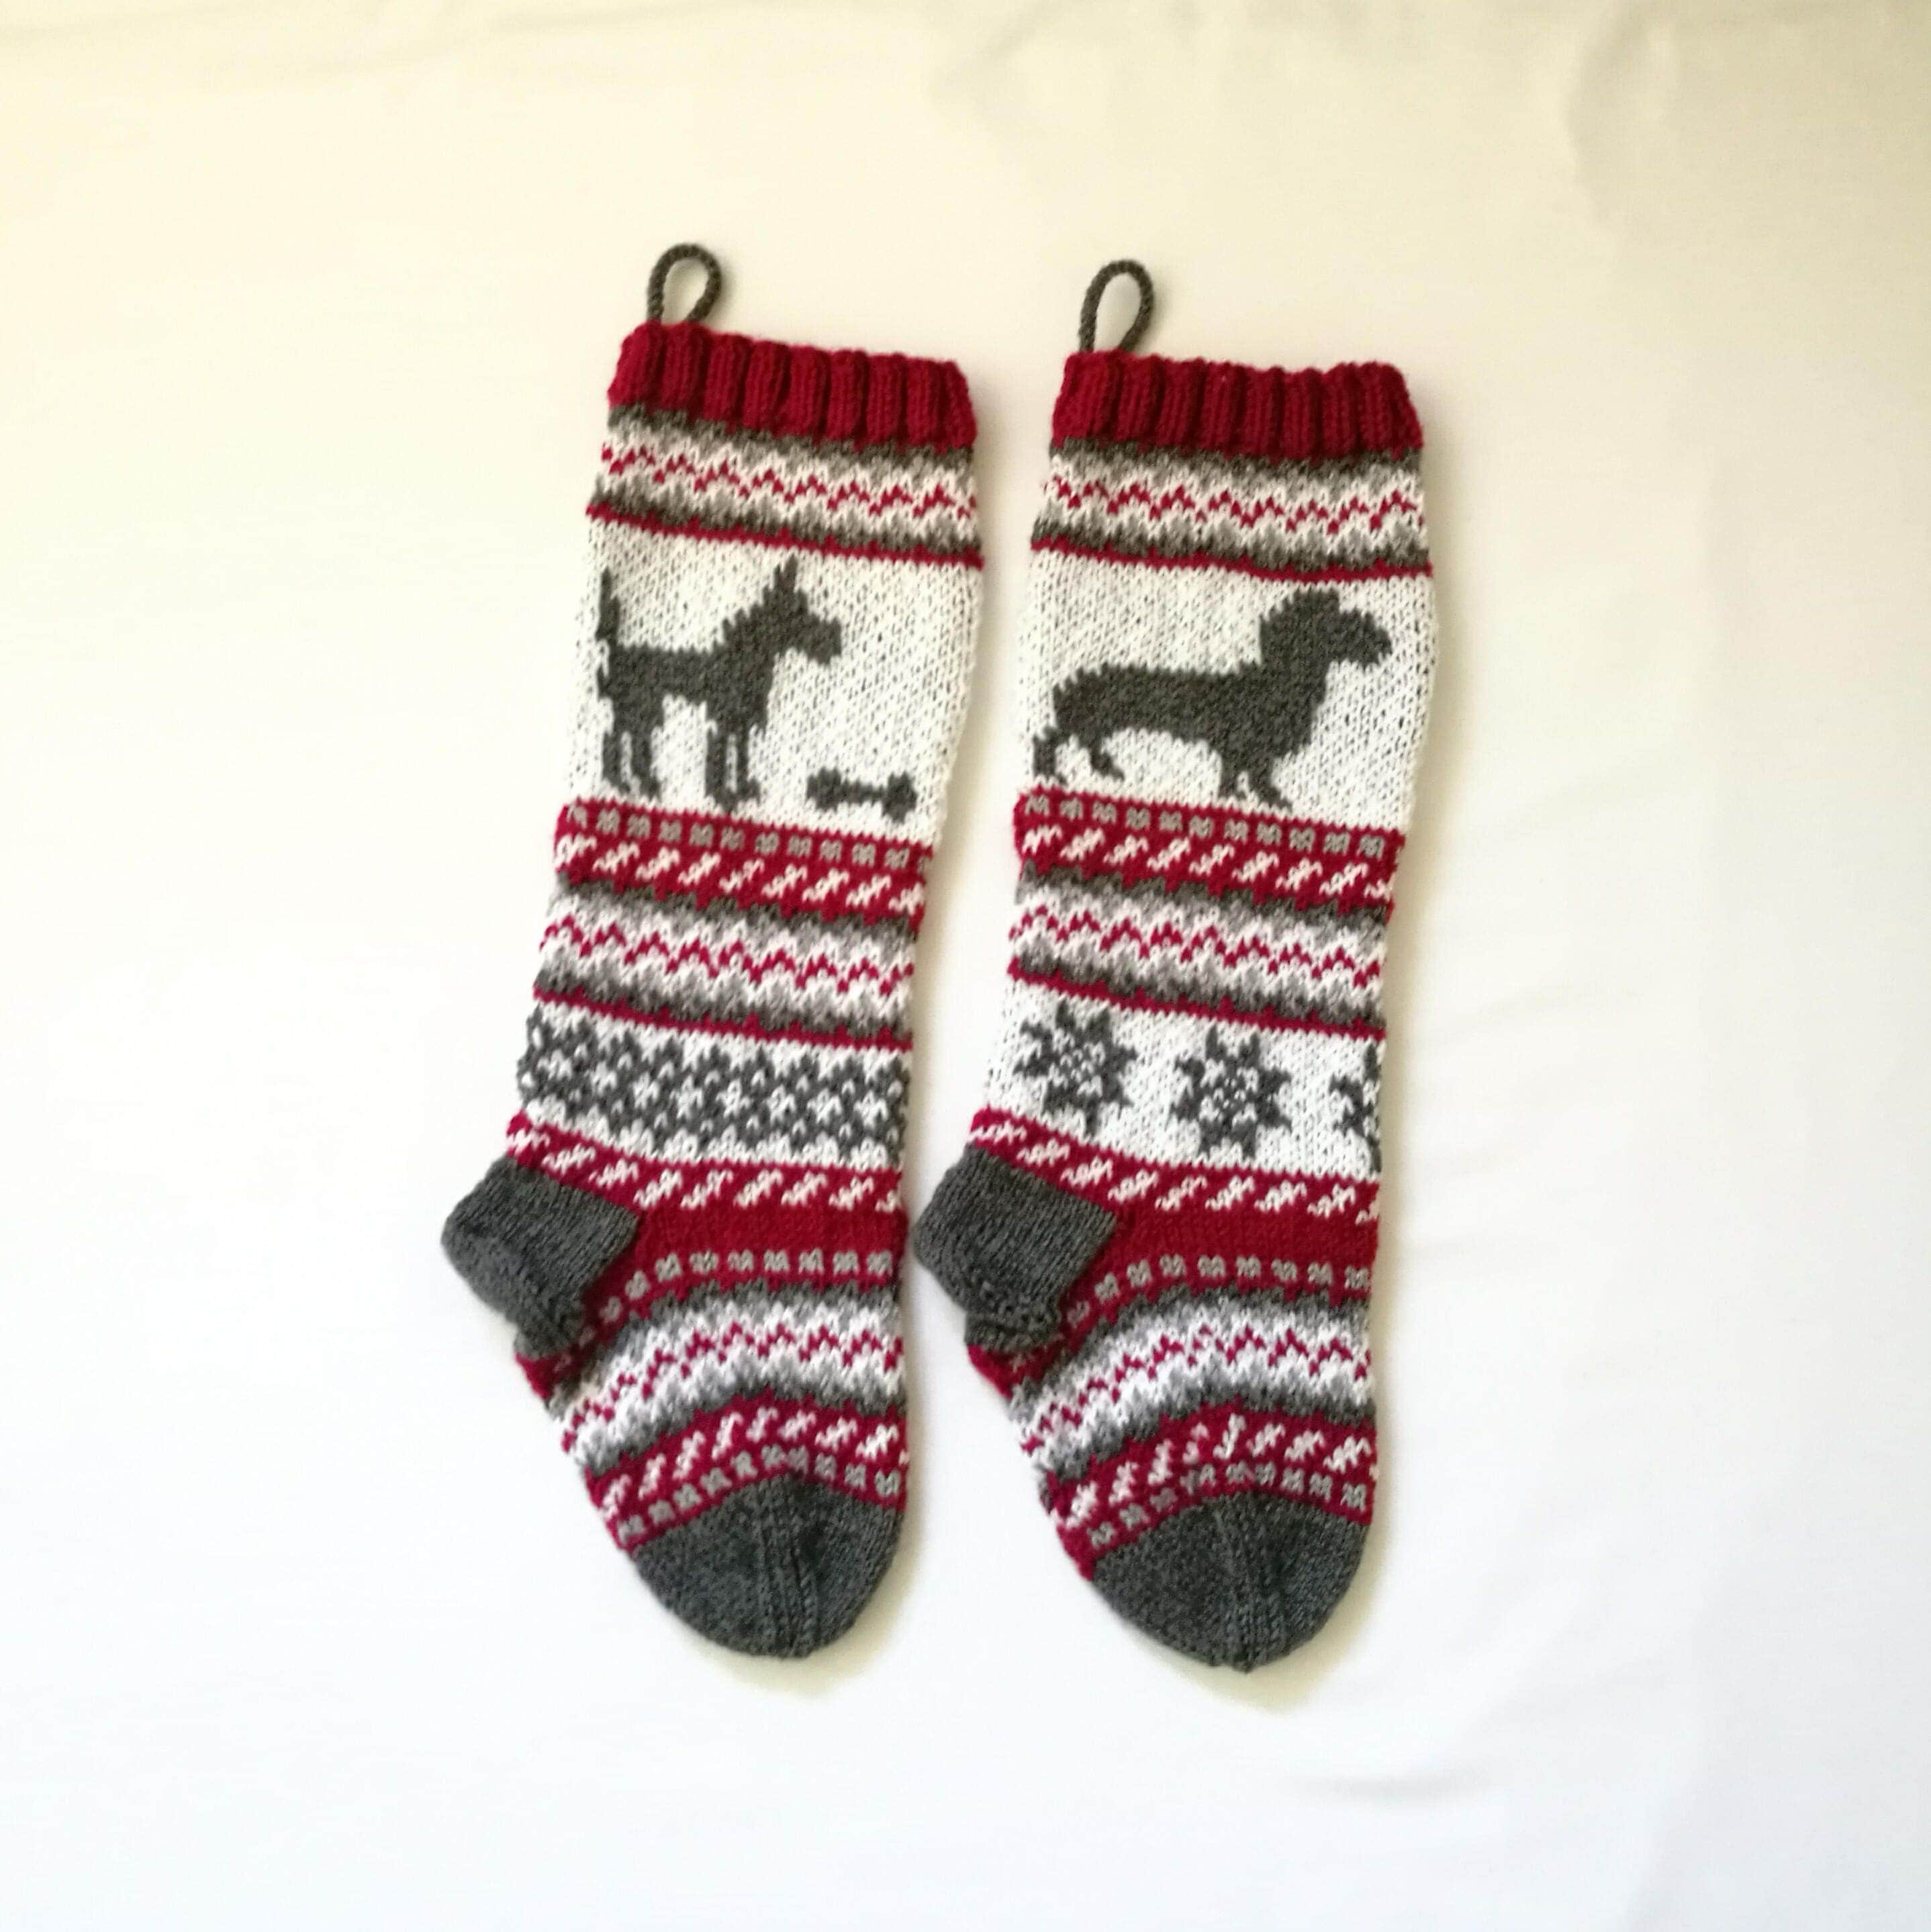 Pattern dog christmas stockings stranded knit dog santa sock for pattern dog christmas stockings stranded knit dog santa sock for dog fairisle dog knitting pattern dog pdf pattern bankloansurffo Choice Image